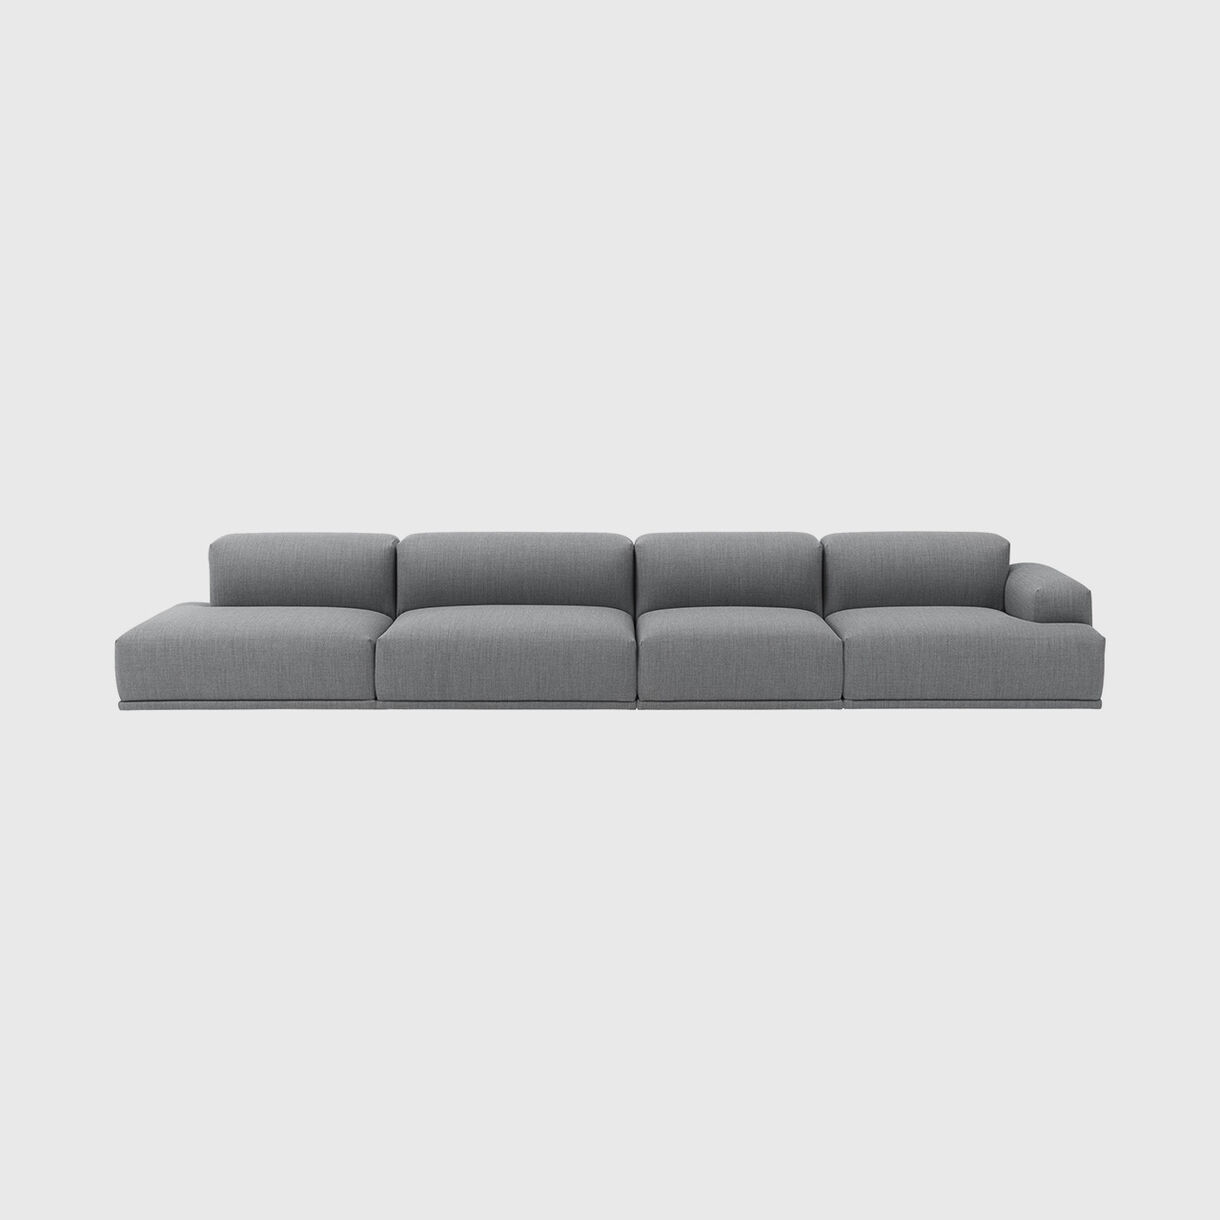 Connect Modular Sofa, 4 Seater, Fiord 151